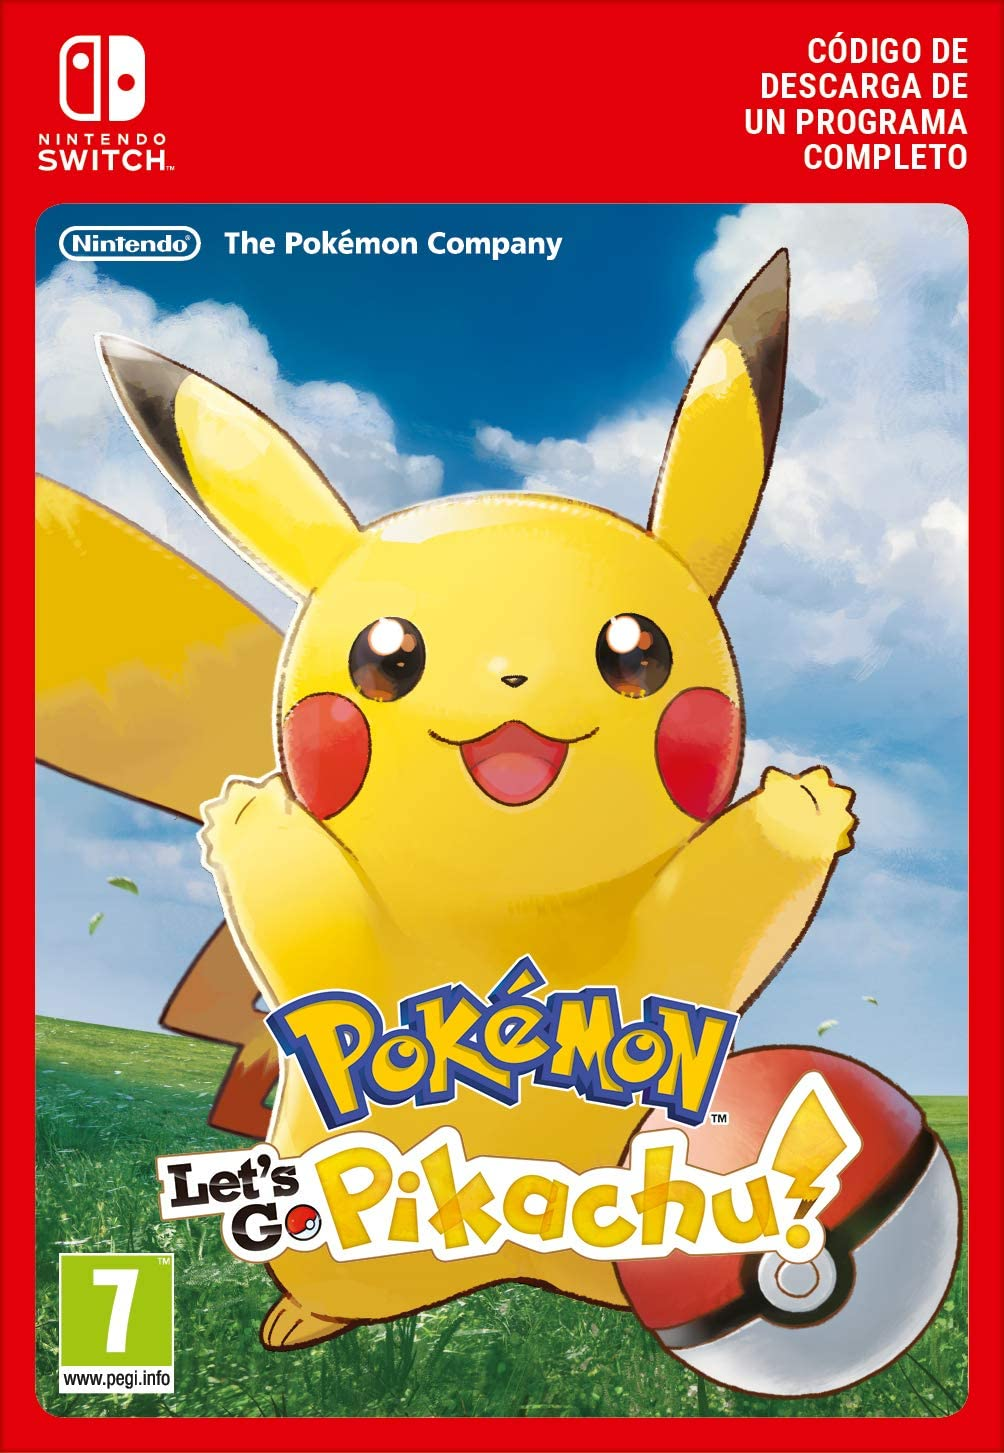 Pokémon Let S Go Pikachu Nintendo Switch Código De Descarga Amazon Es Videojuegos